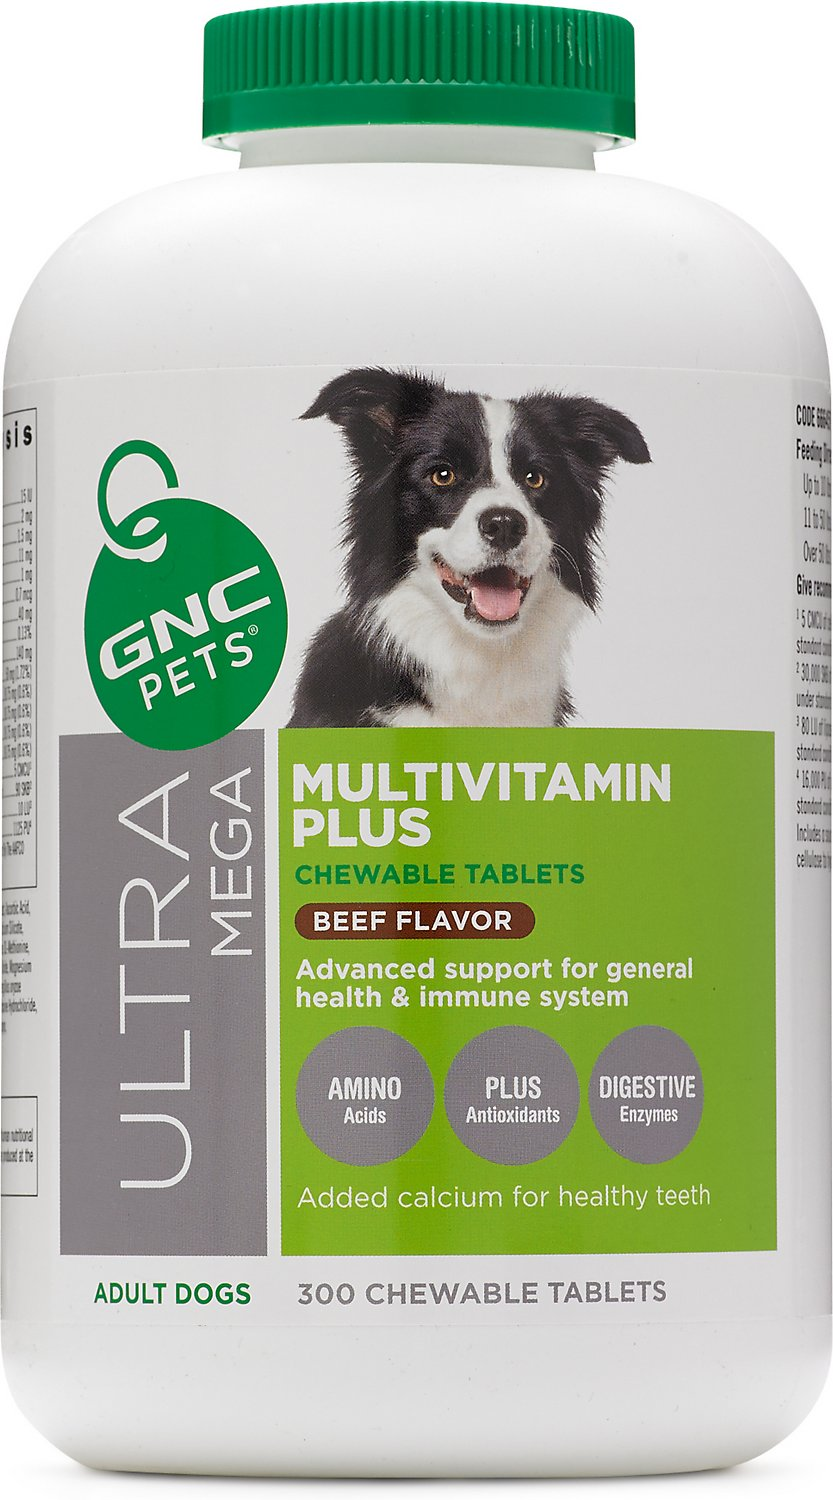 Gnc Pets Ultra Mega Multivitamin Plus Beef Flavor Chewable Tablets